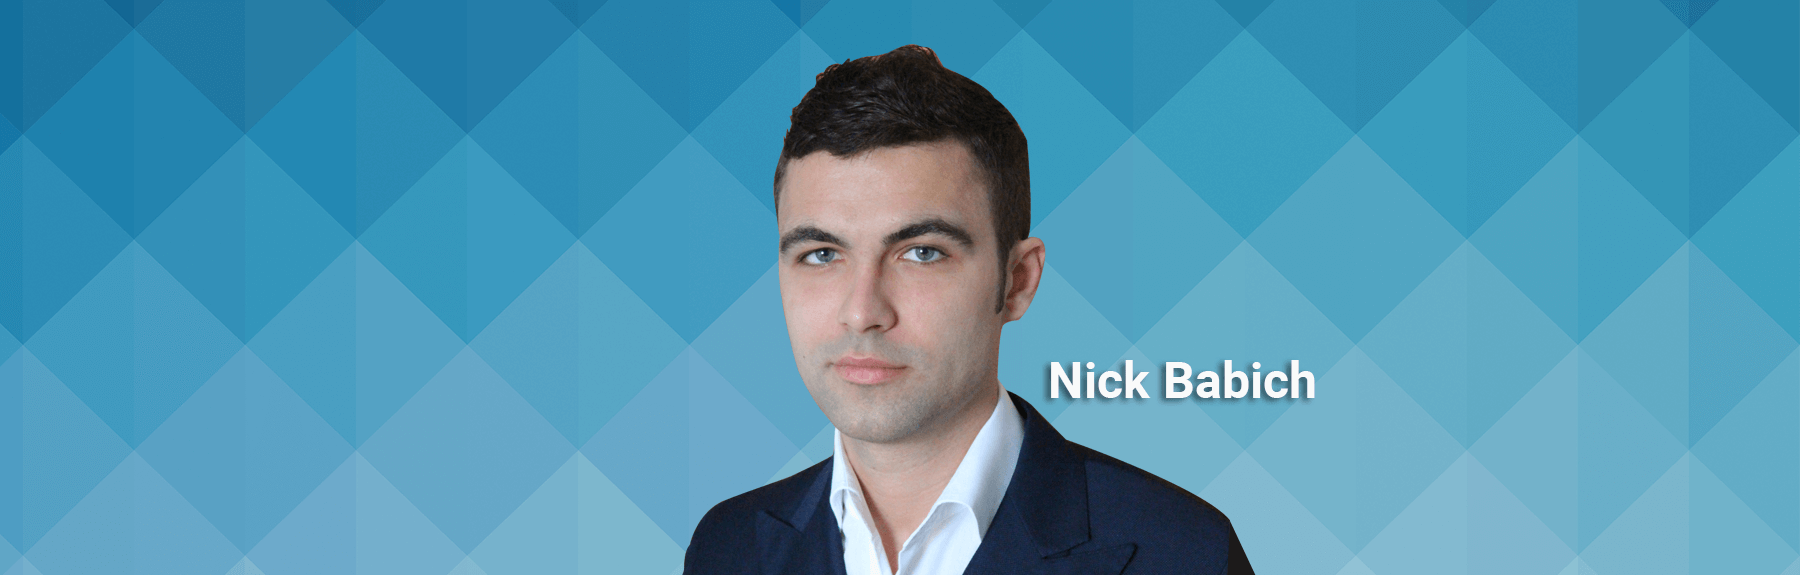 interview-with-Nick-Babich